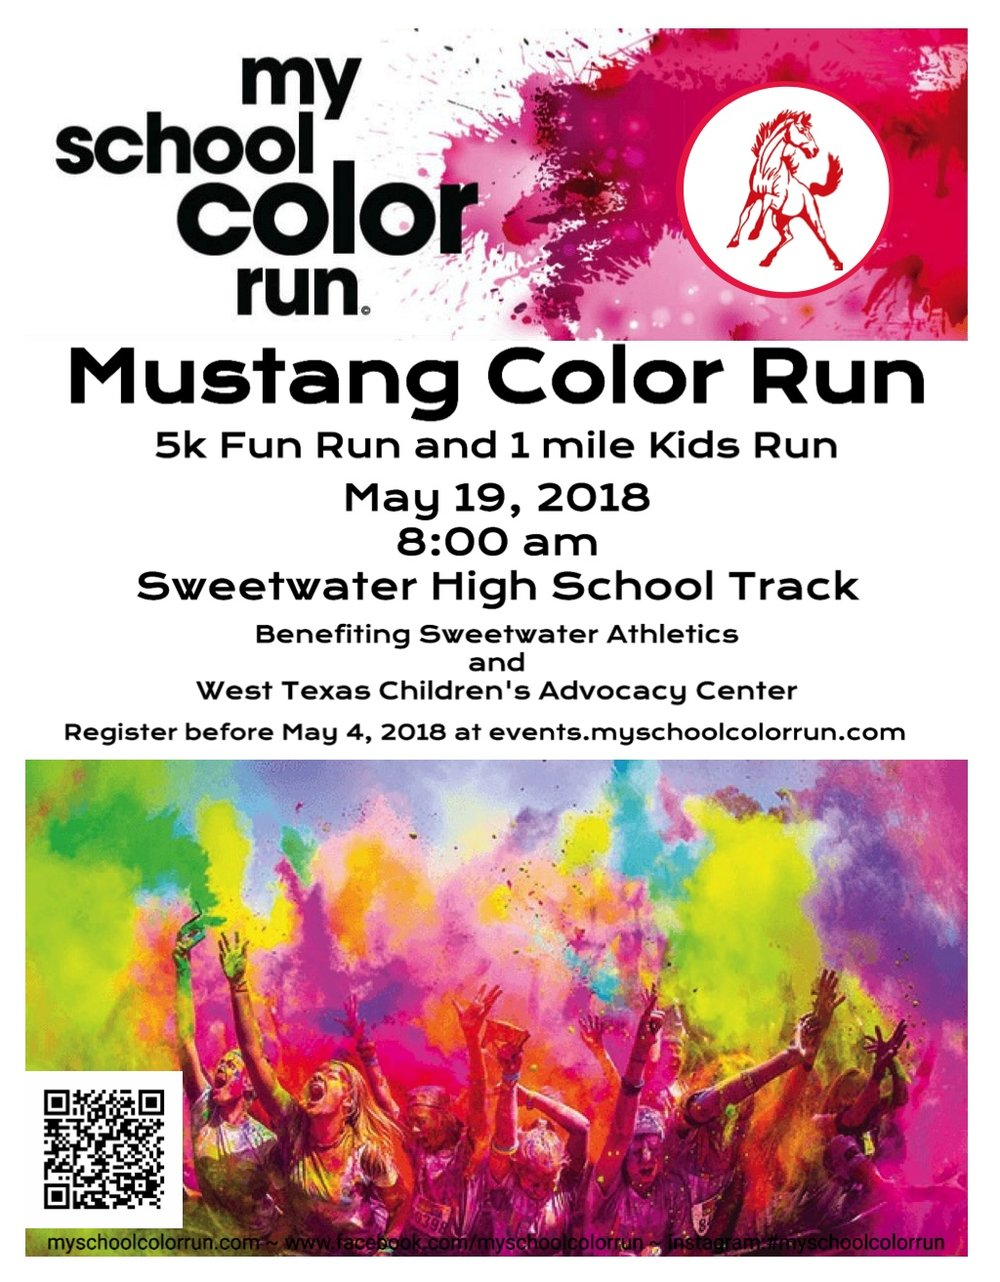 2018 Mustang Color Run Info Image